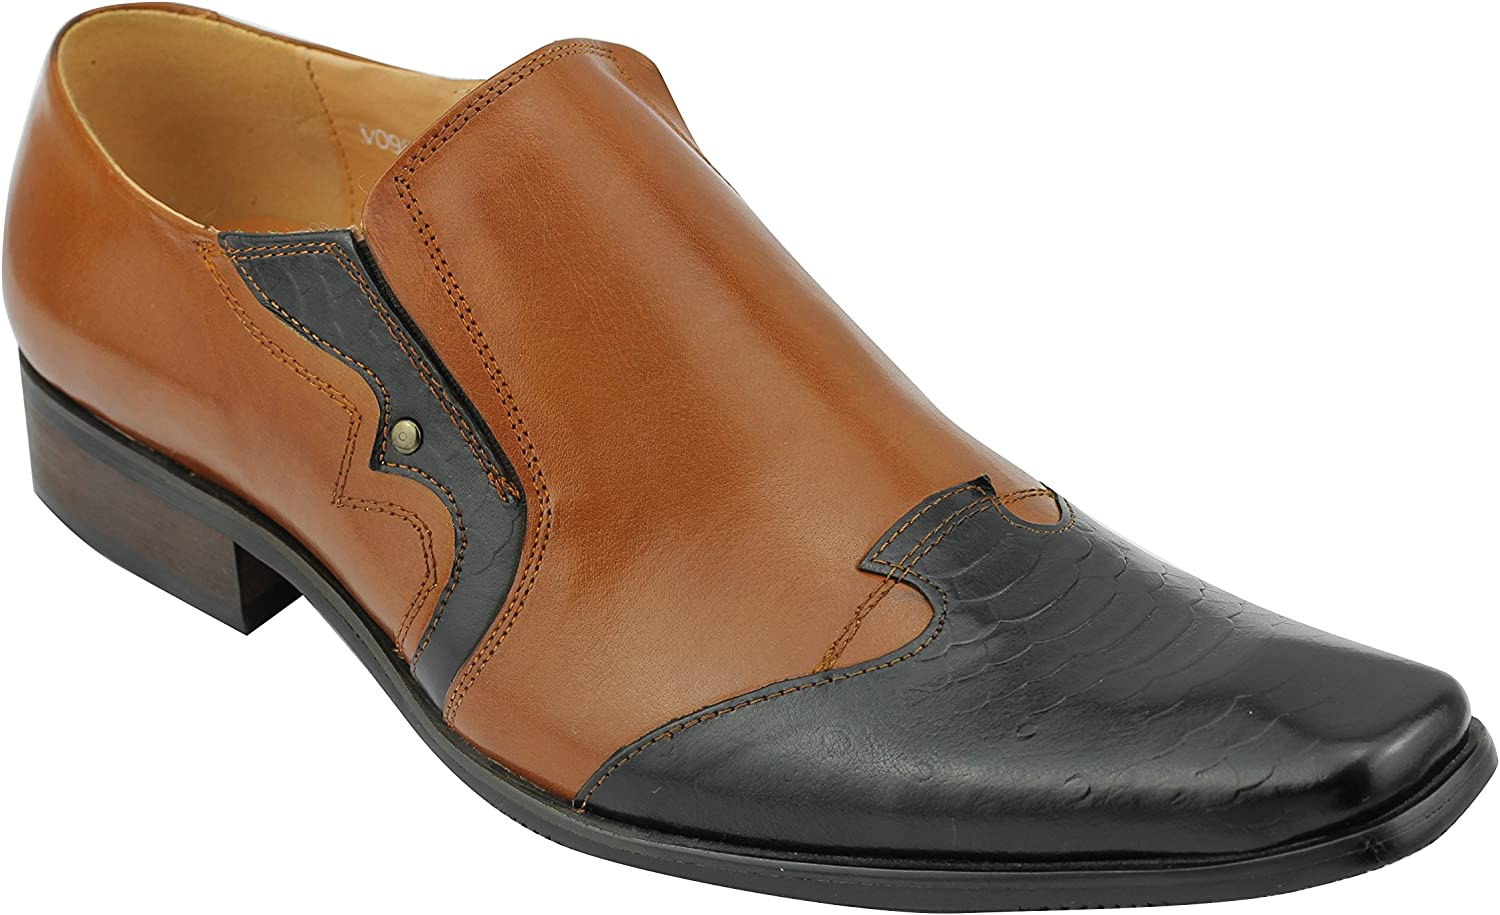 Xposed Mens Real Leather Tan Black 2 Tone Slip on Loafer Smart Casual shoes Size 6 7 8 9 10 11 11.5